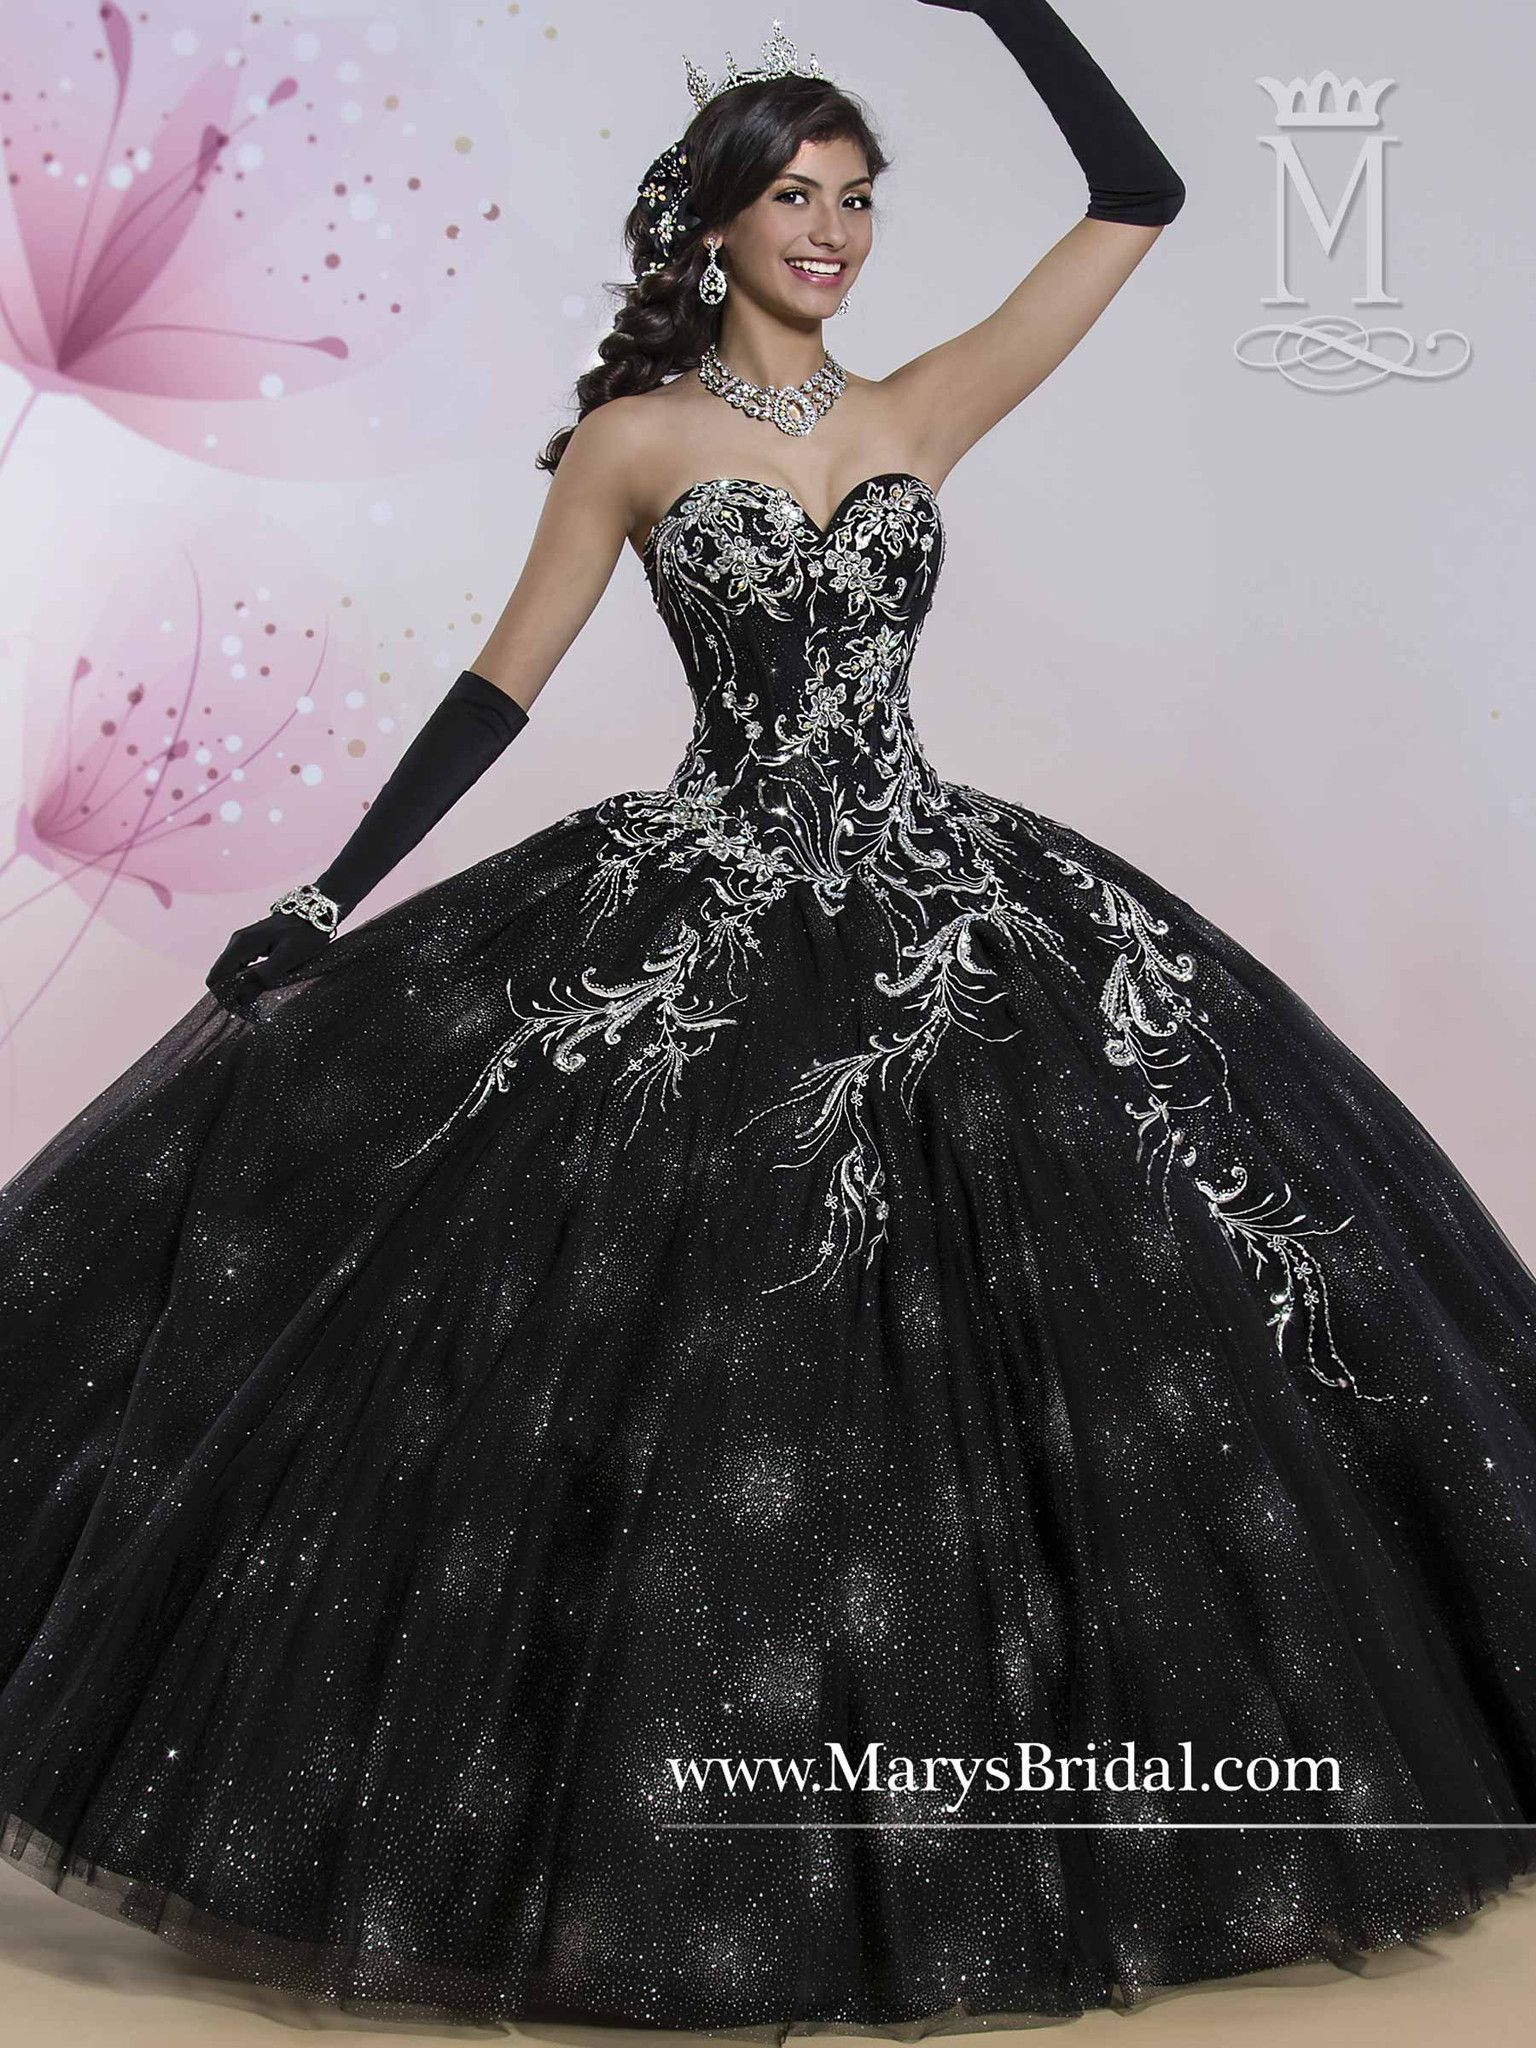 Mary 39 s bridal princess collection quinceanera dress style for Wedding style prom dresses